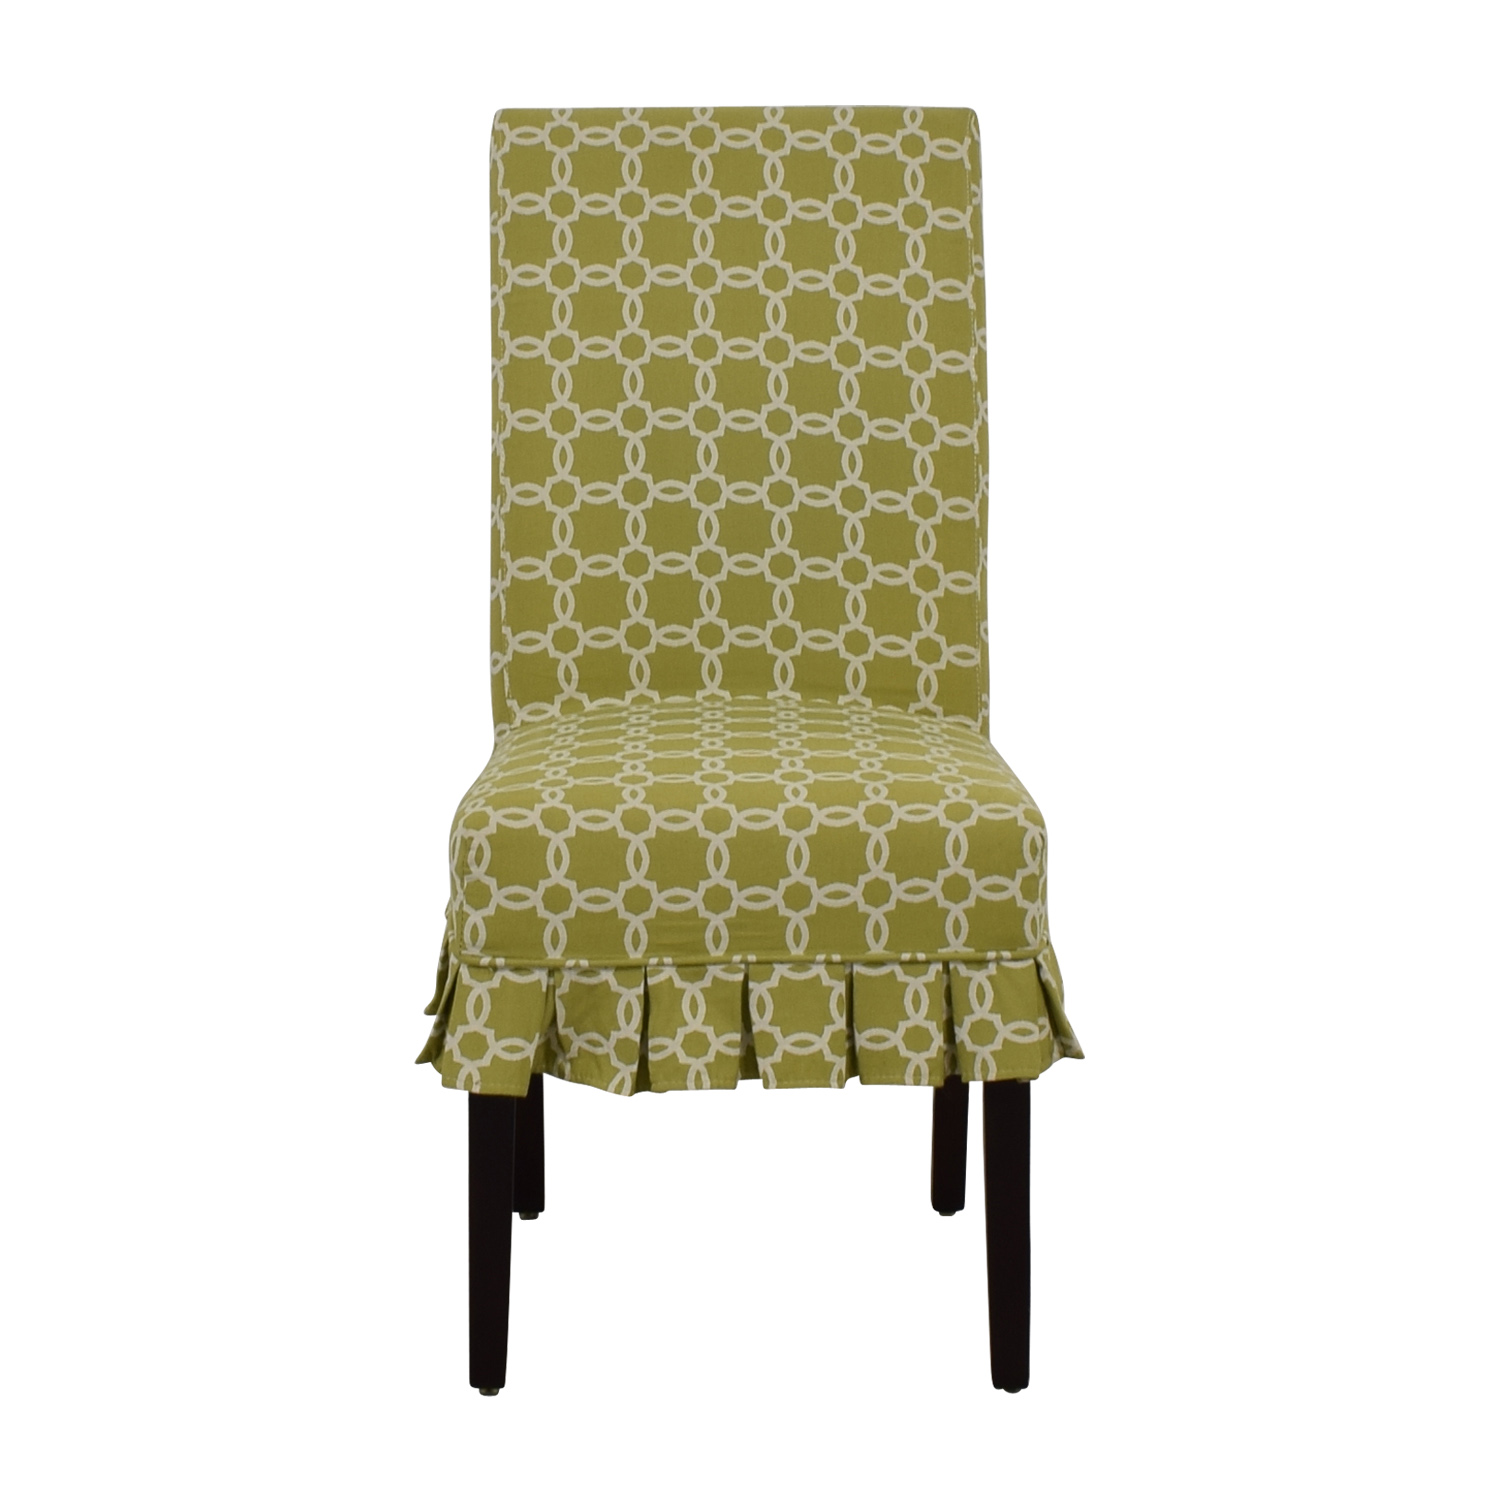 Pier 1 Green Accent Chair / Accent Chairs